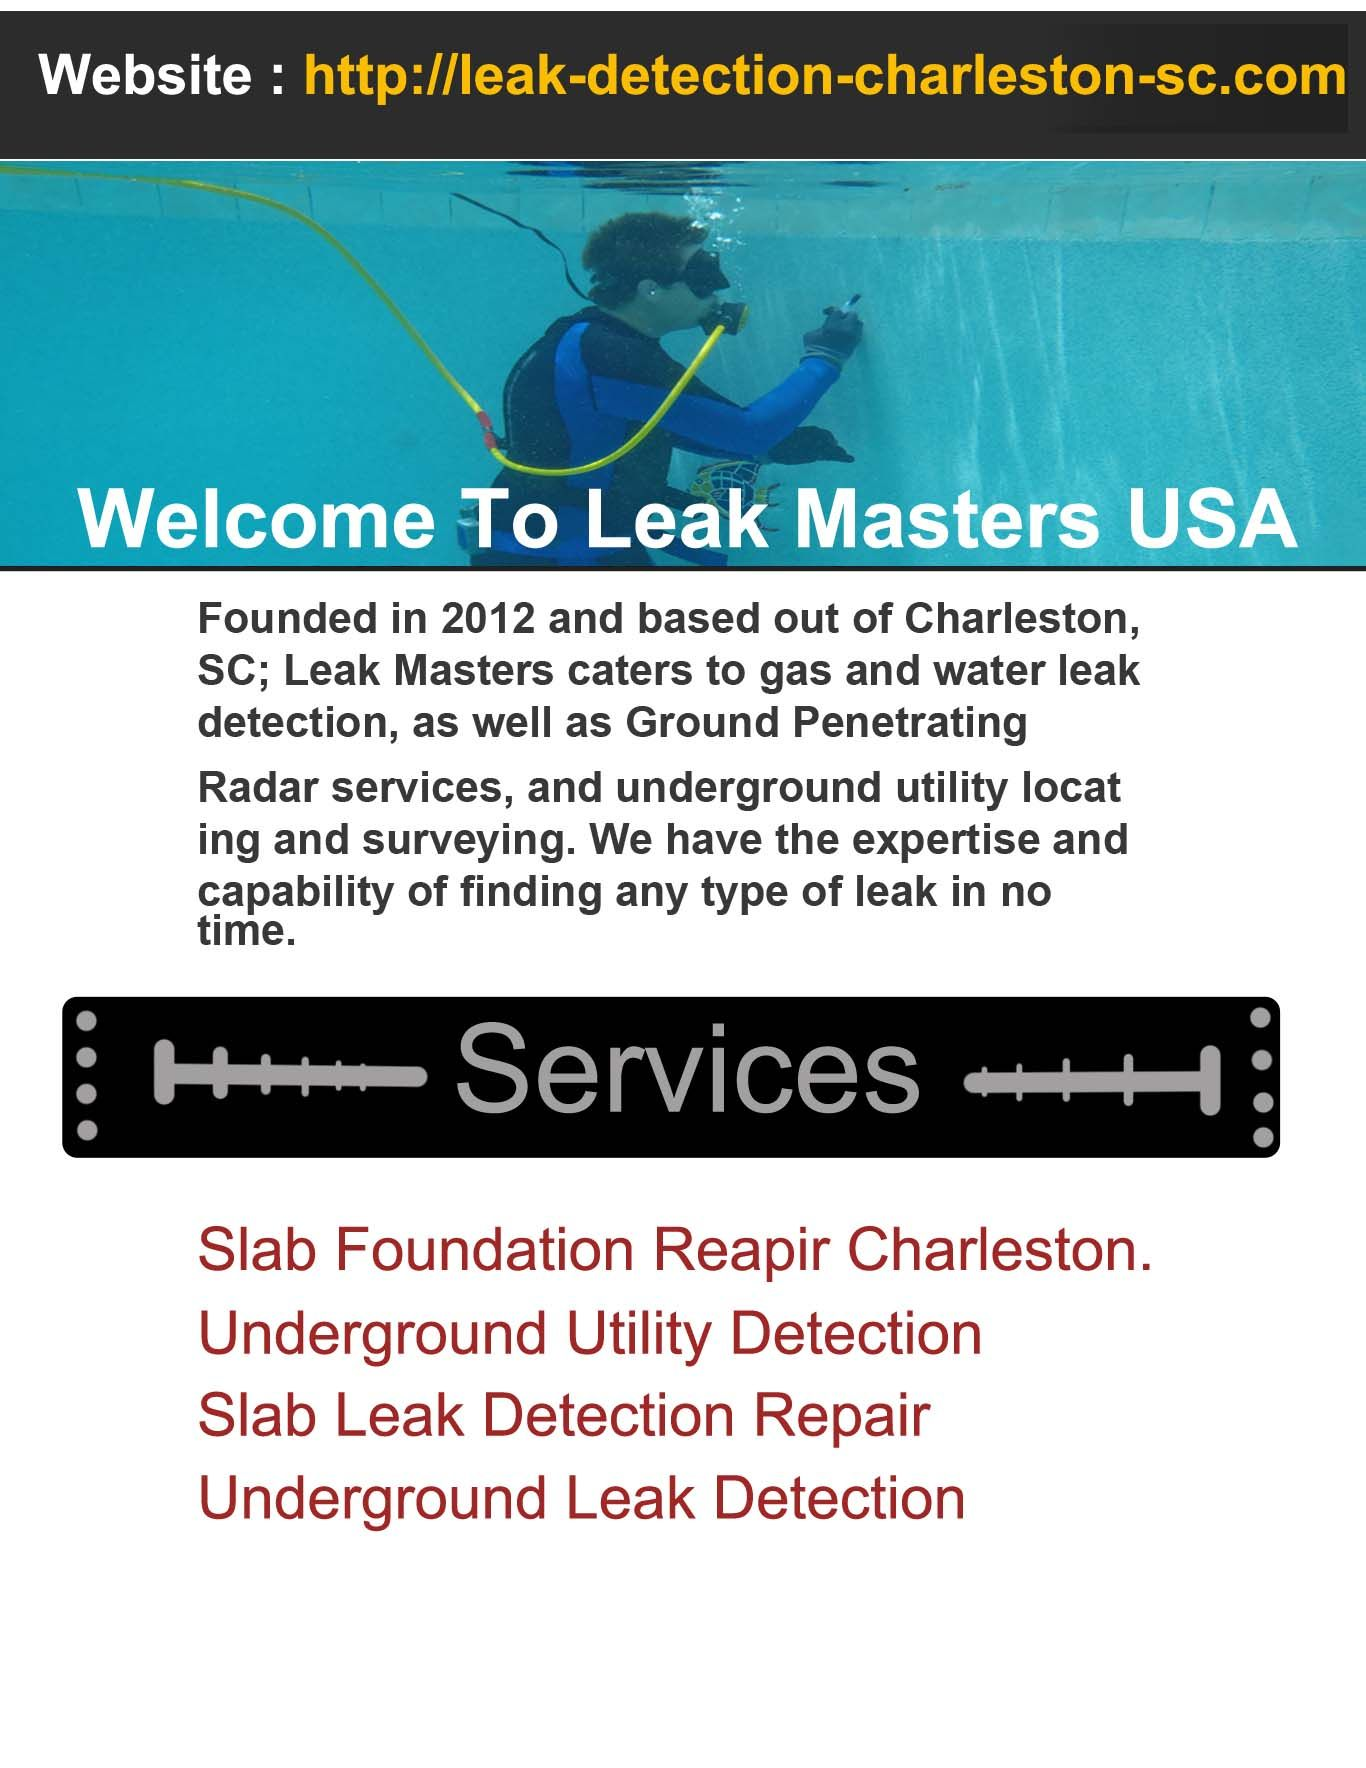 We Are A Prominent Provider Of Underground Leak Detection Service In South Carolina We Use Latest Technology To Detect U Leak Repair Slab Leak Latest Technology